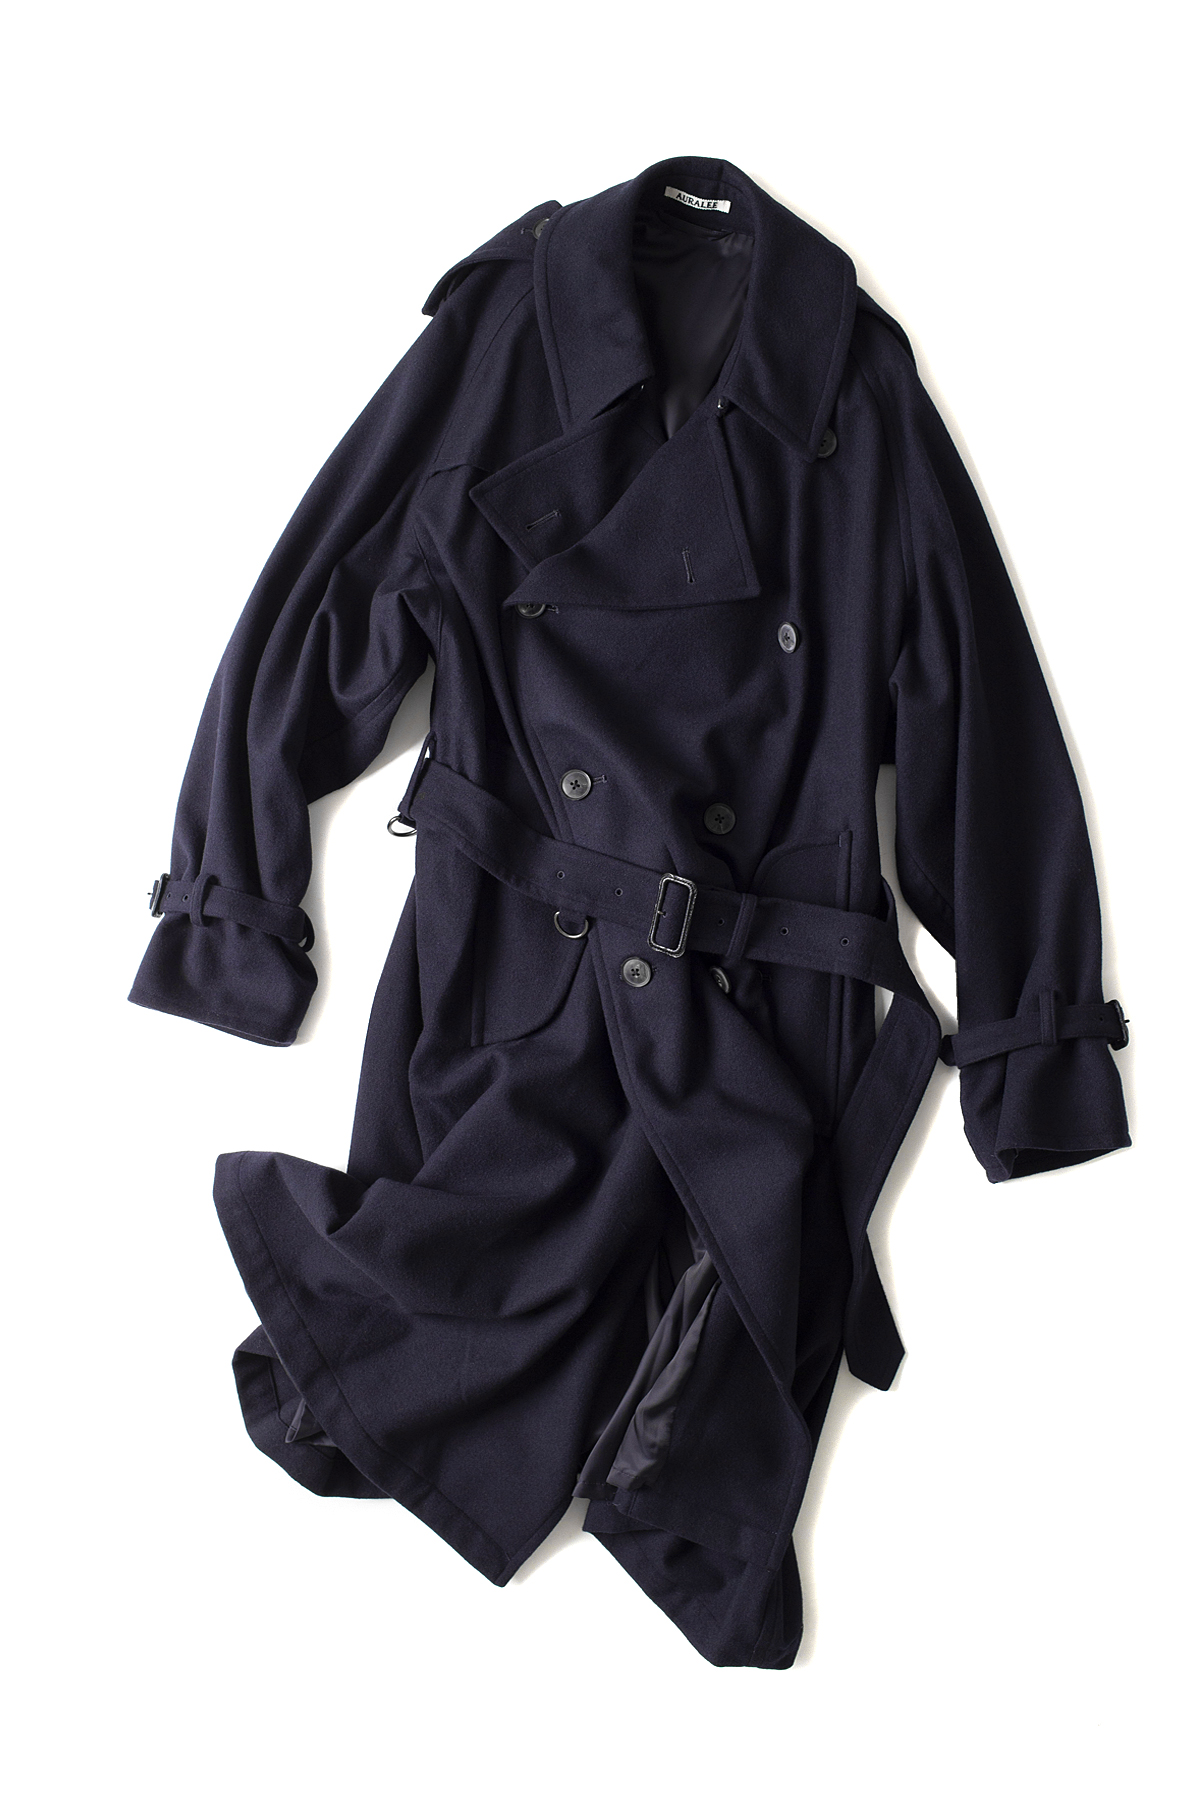 Auralee : Wool Cashmere Flannel Big Trench Coat (Navy)